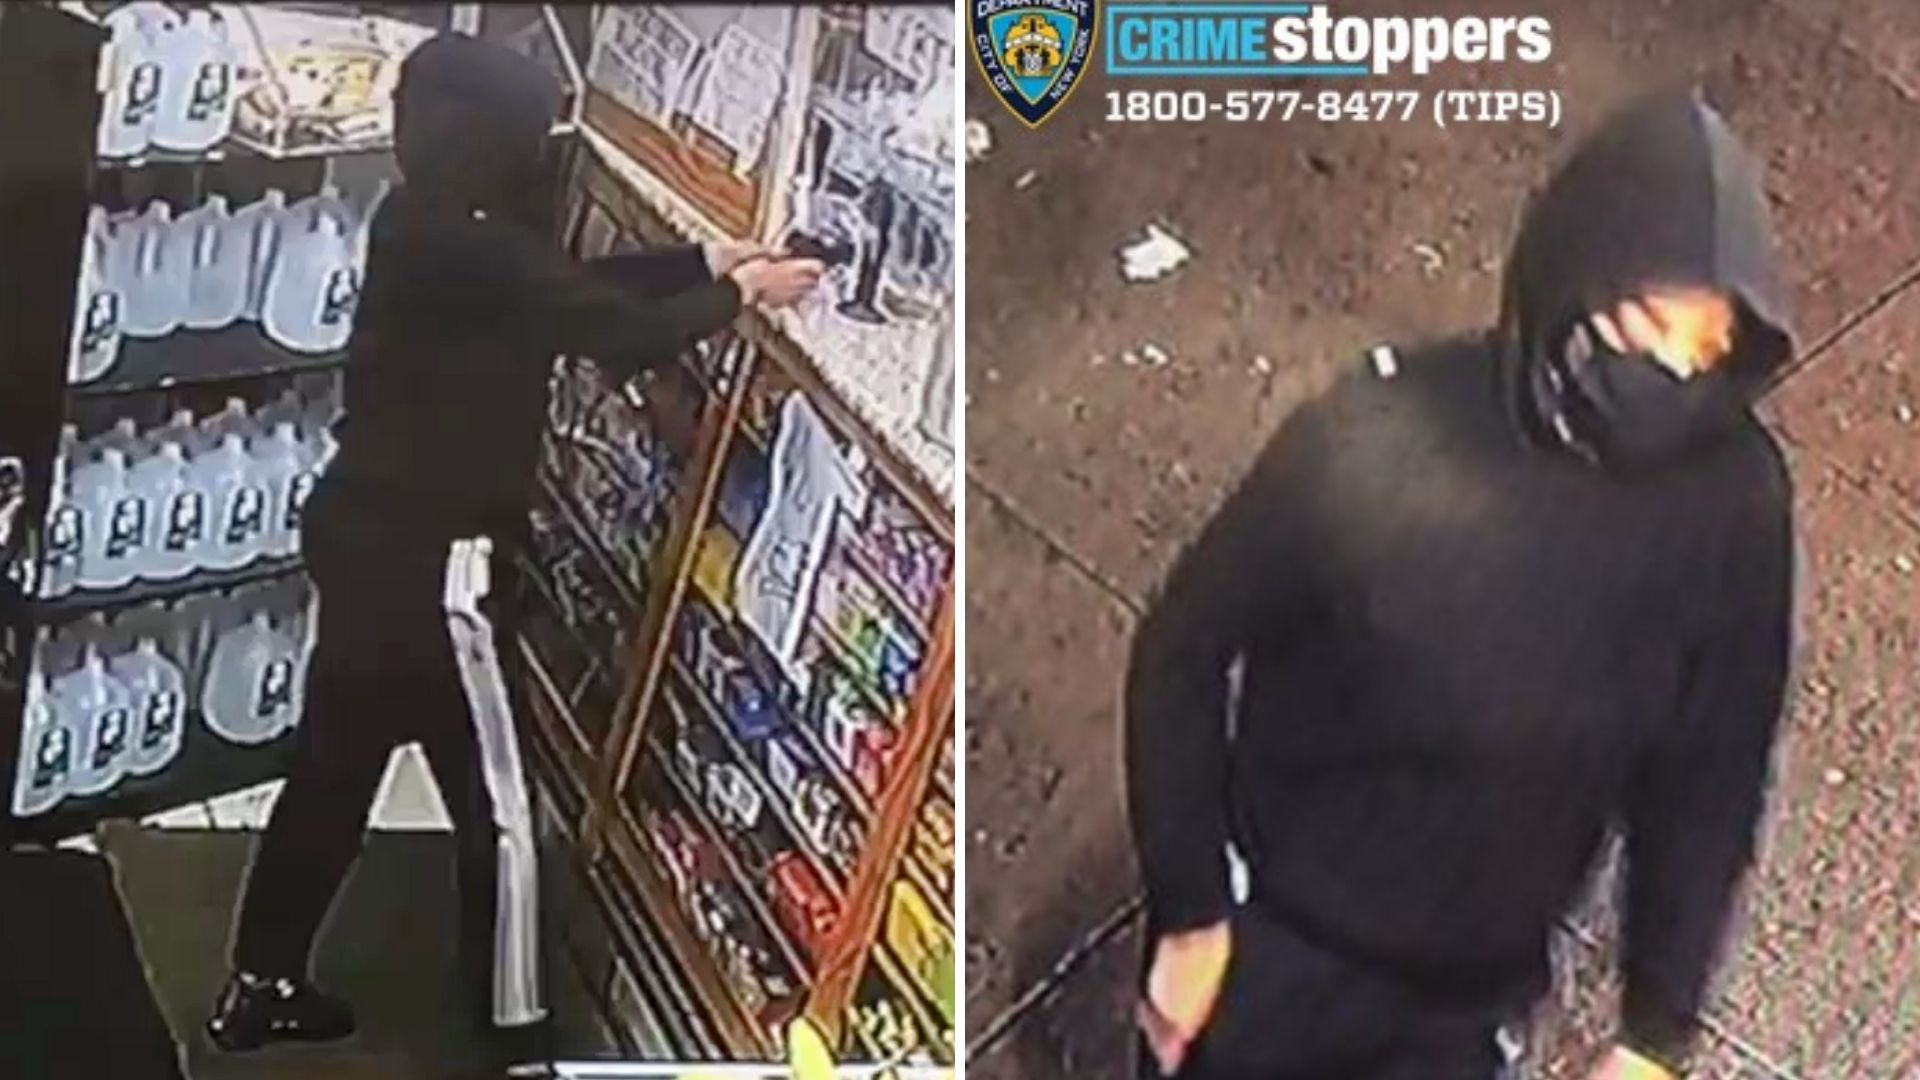 Surveillance images of a woman who walked into a Bronx bodega and opened fire on Thursday, April 1, 2021, according to police. (NYPD)